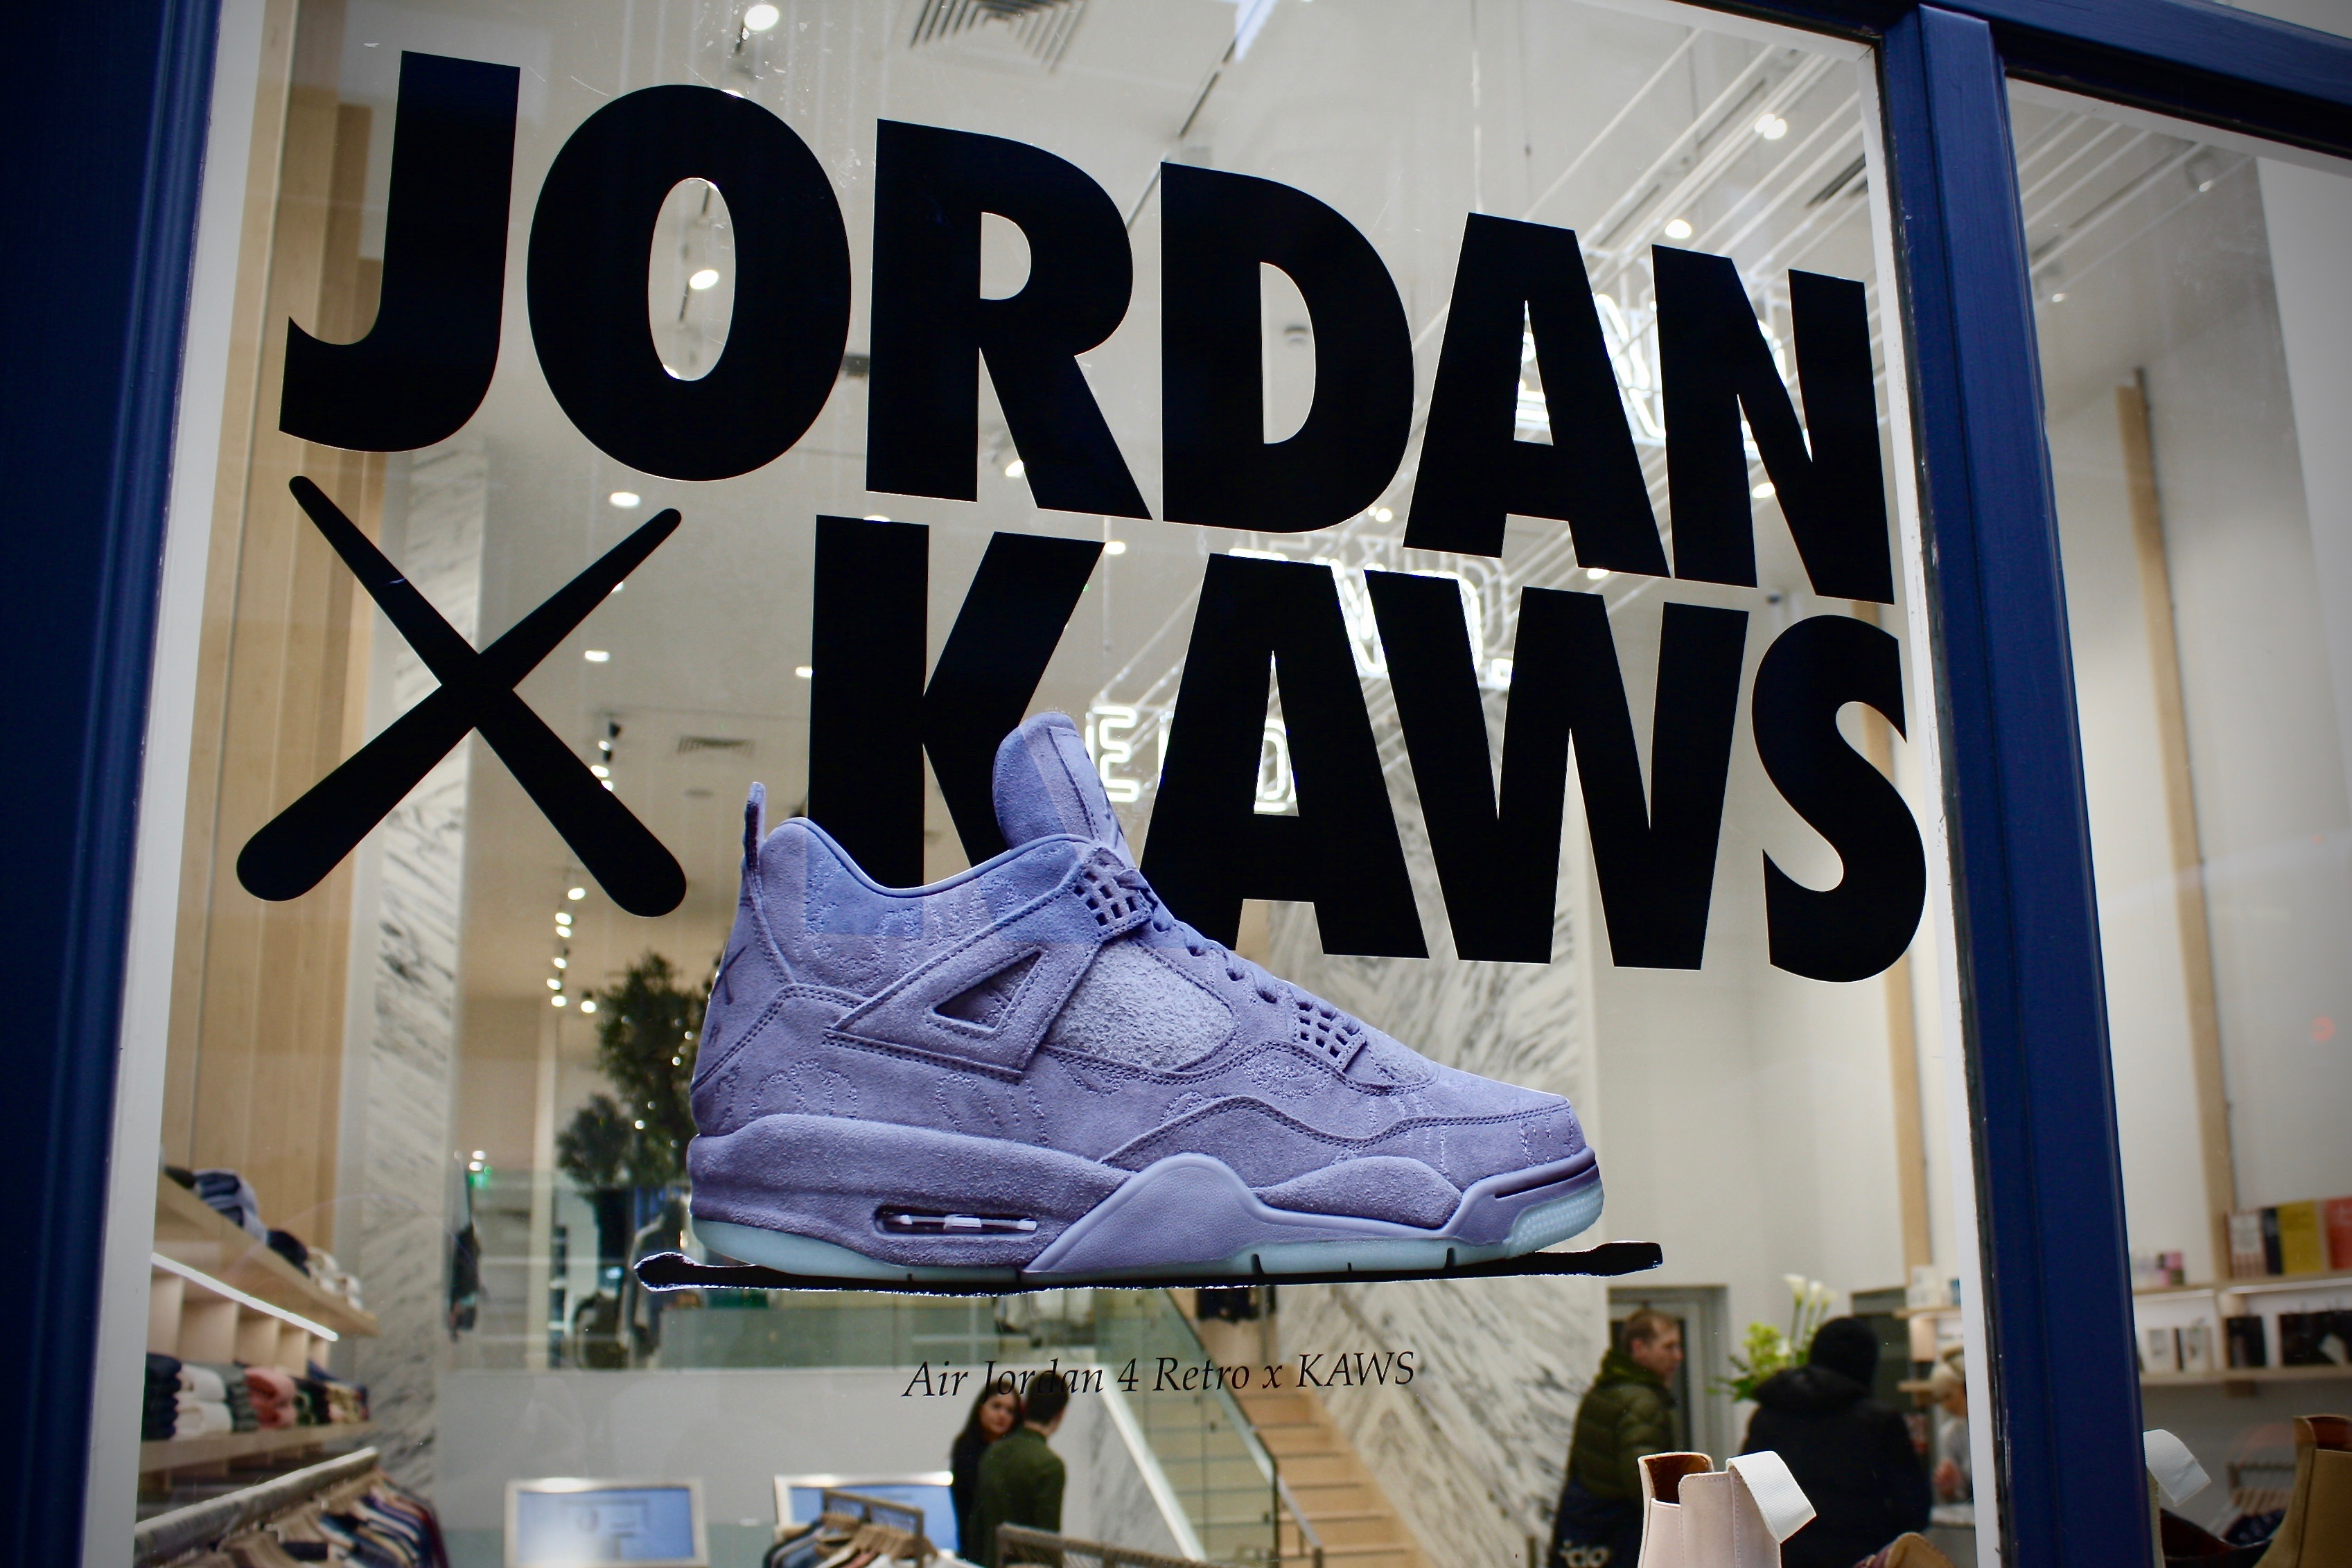 info for ef3c2 de6cf Nike Air Jordan IV x Kaws Release Recap – End Clothing Glasgow